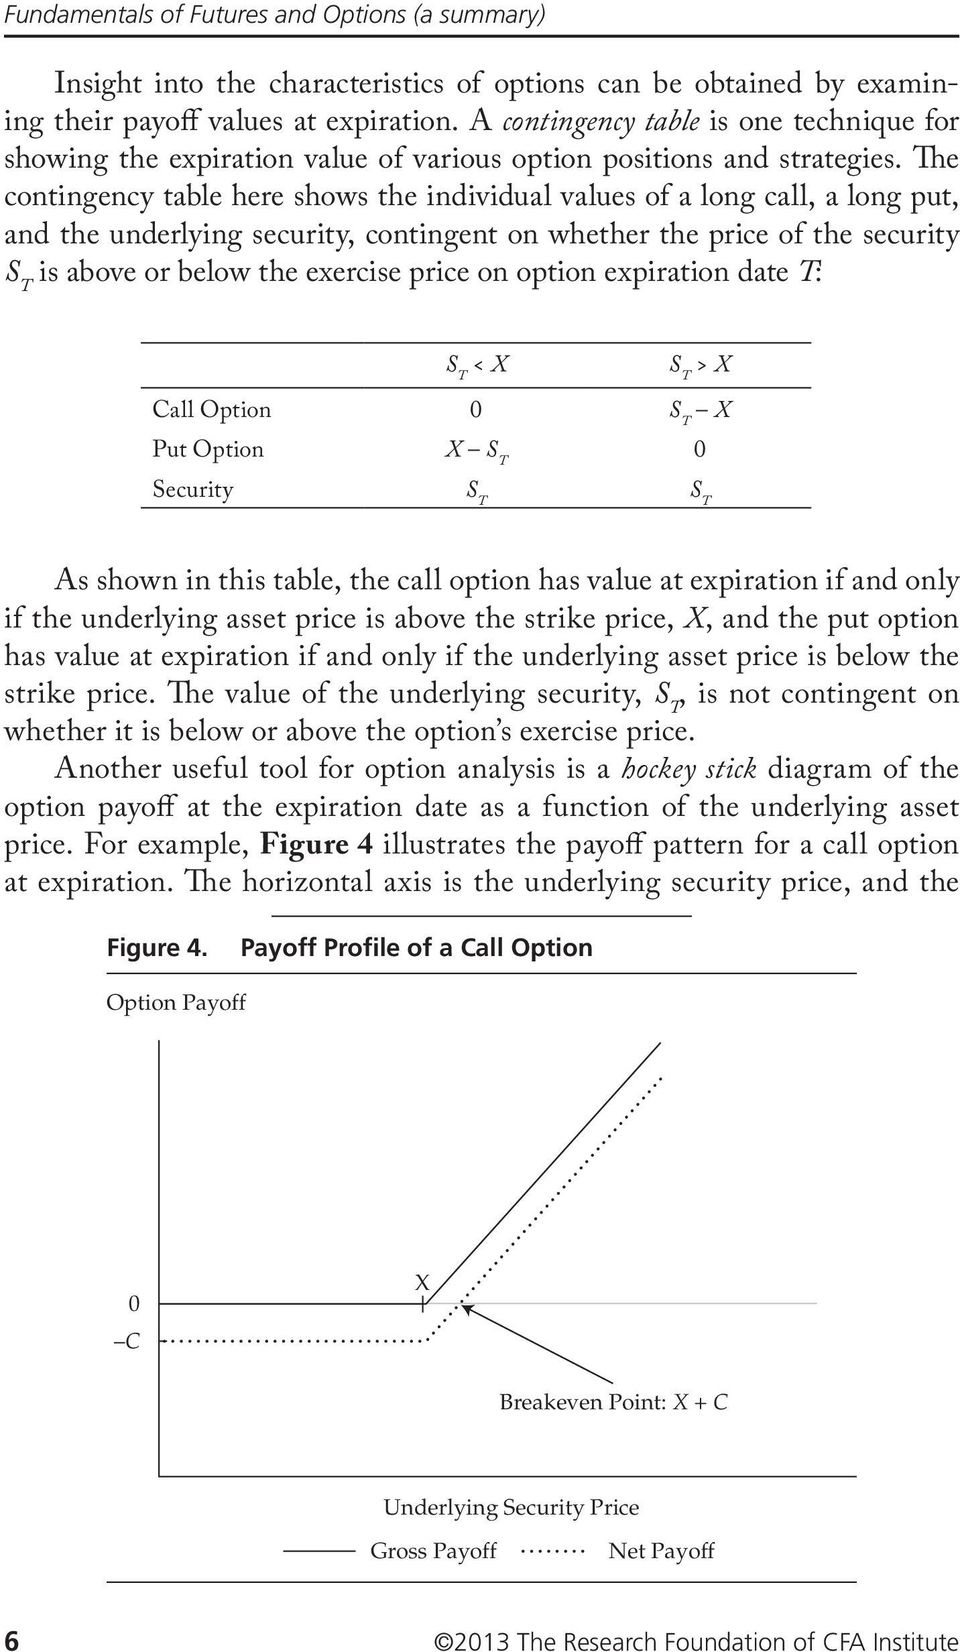 The contingency table here shows the individual values of a long call, a long put, and the underlying security, contingent on whether the price of the security S T is above or below the exercise